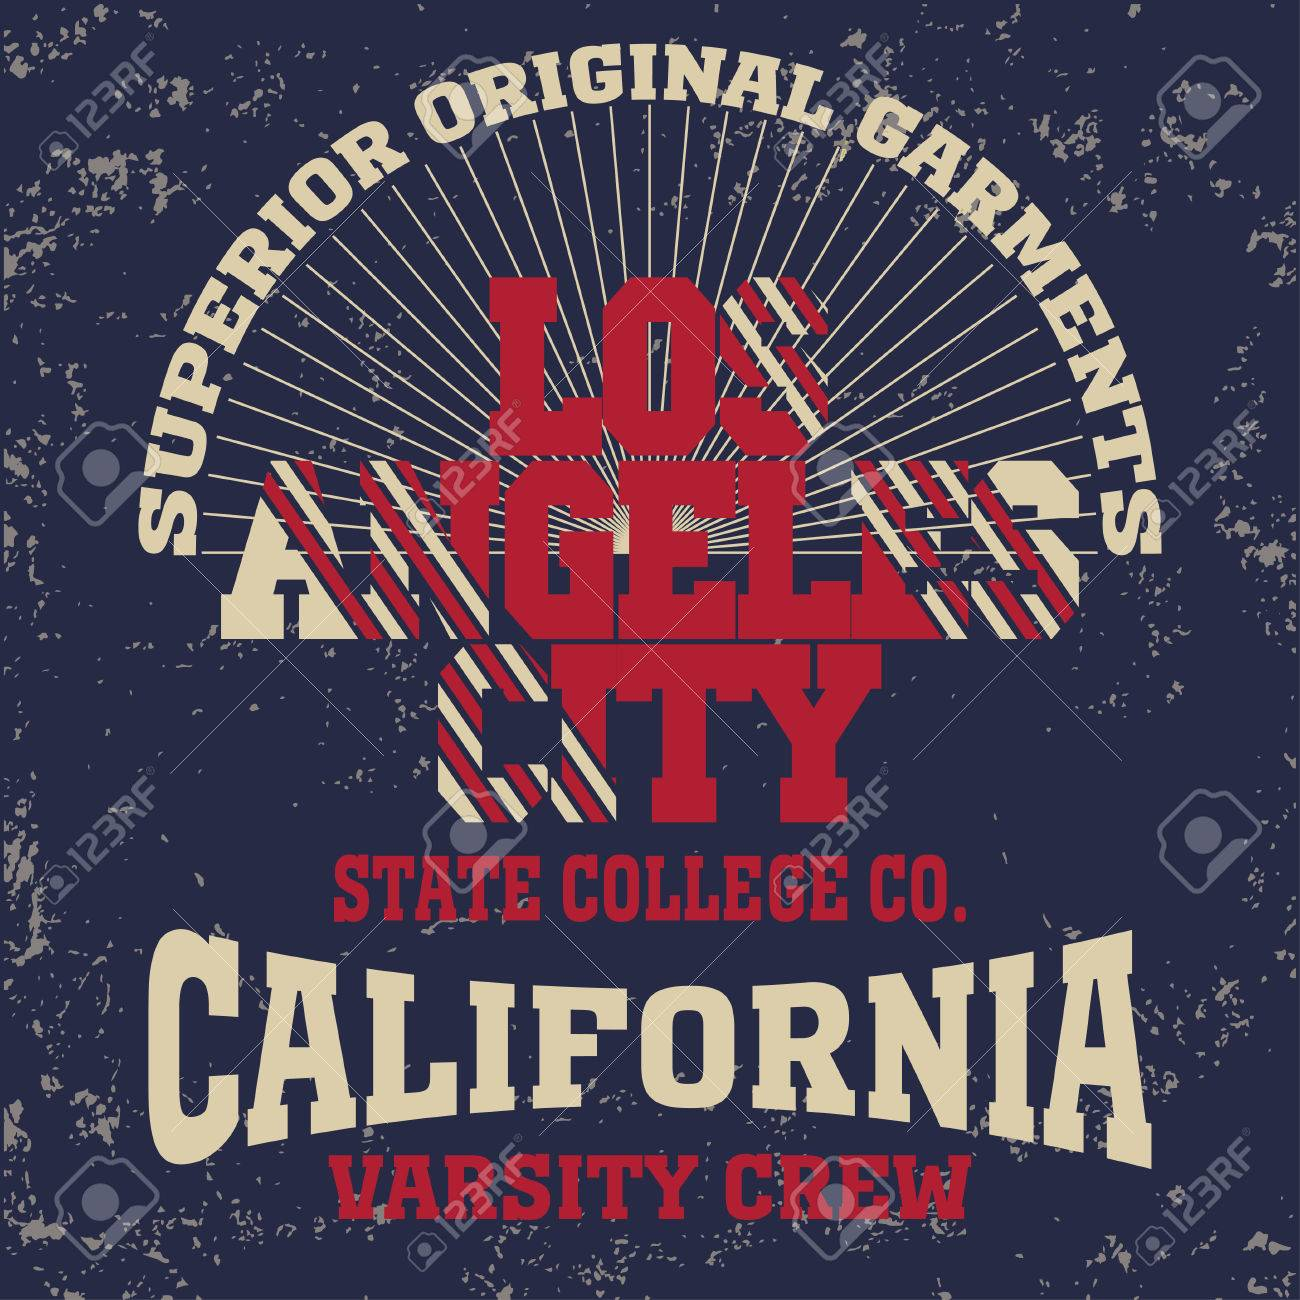 College Fashion Design Print For T Shirt Los Angeles California Royalty Free Cliparts Vectors And Stock Illustration Image 64645974